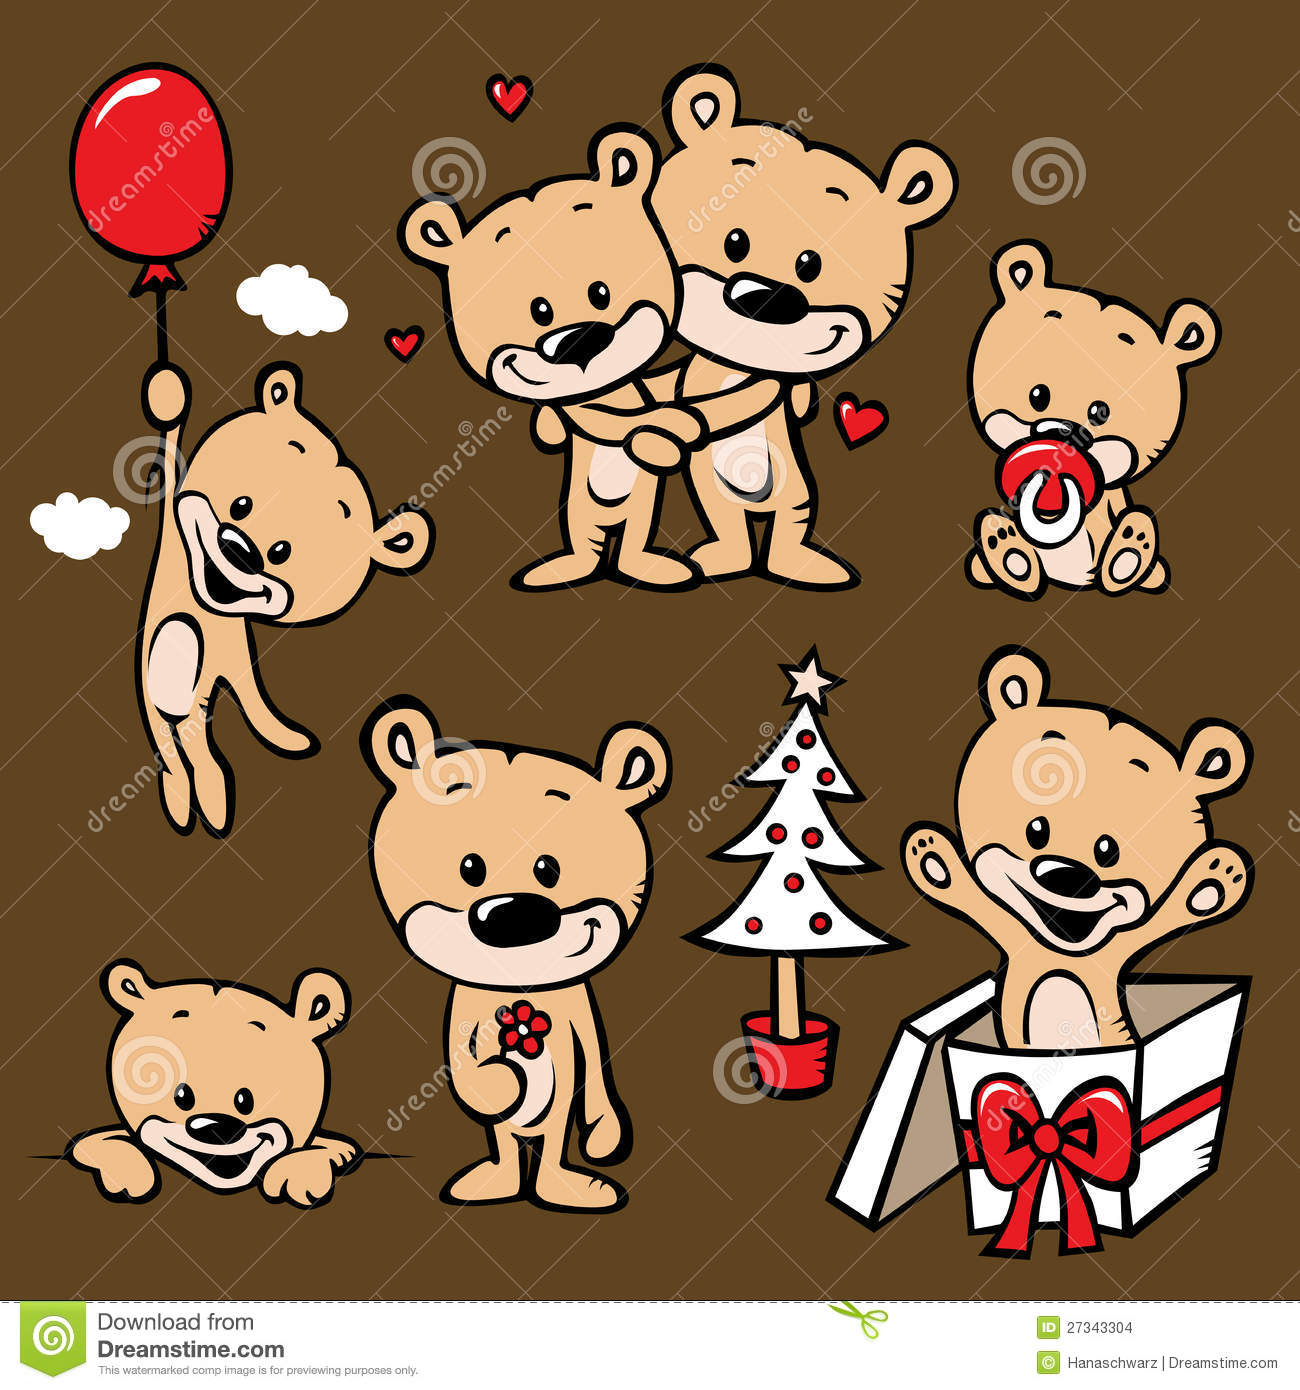 Cute bear family cartoon stock vector. Illustration of ...